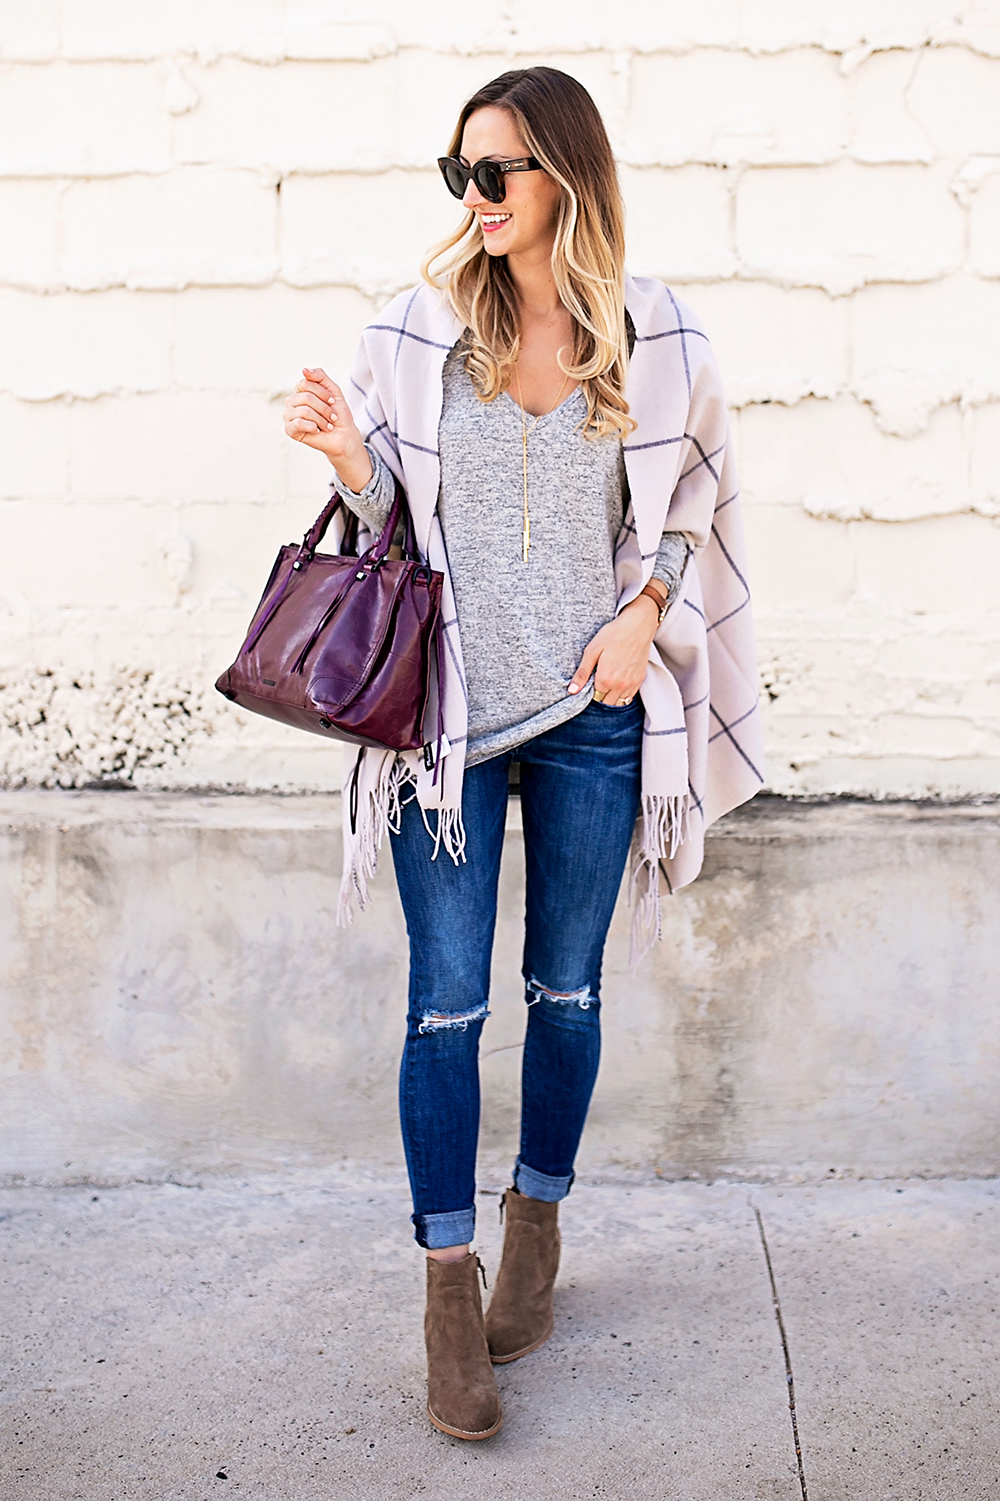 7503f190e18c8 livvyland-blog-olivia-watson-nordstrom-fall-outfit-grey-